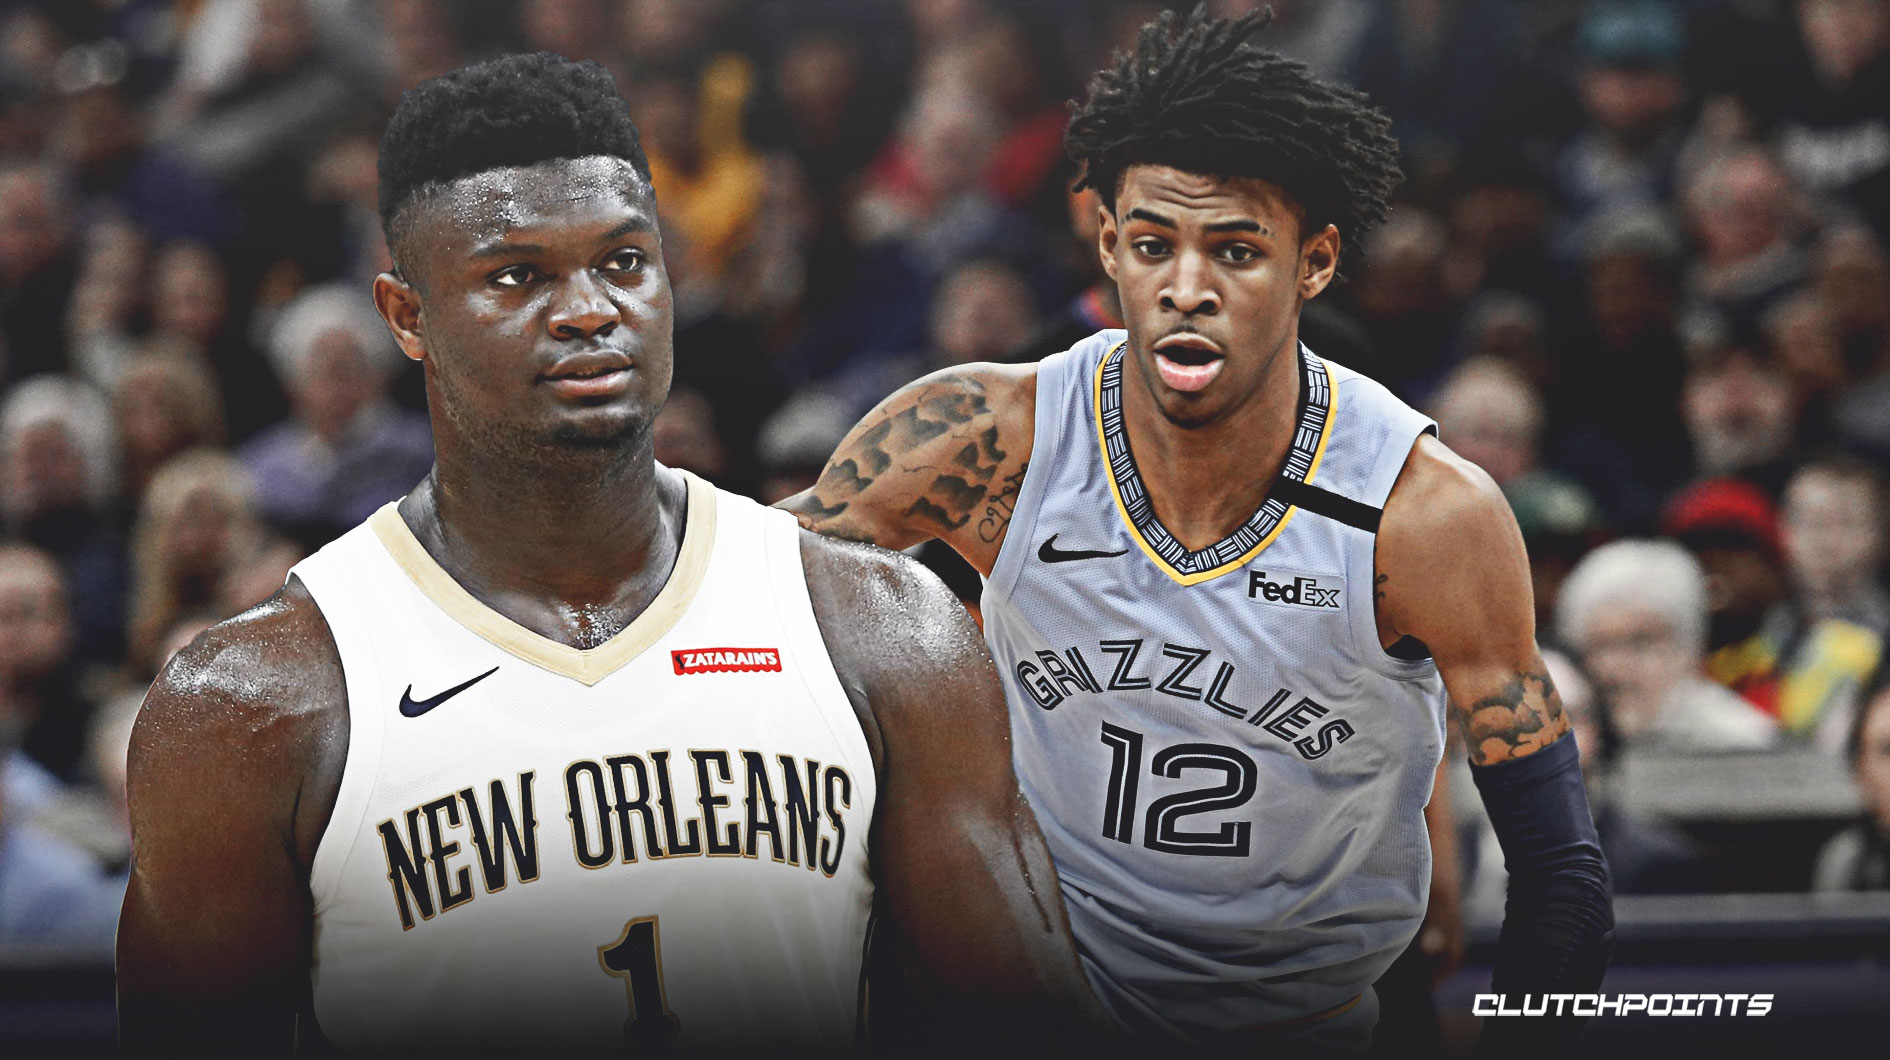 Pelicans, Grizzlies, Zion Williamson, Ja Morant, NBA Rookie of the Year